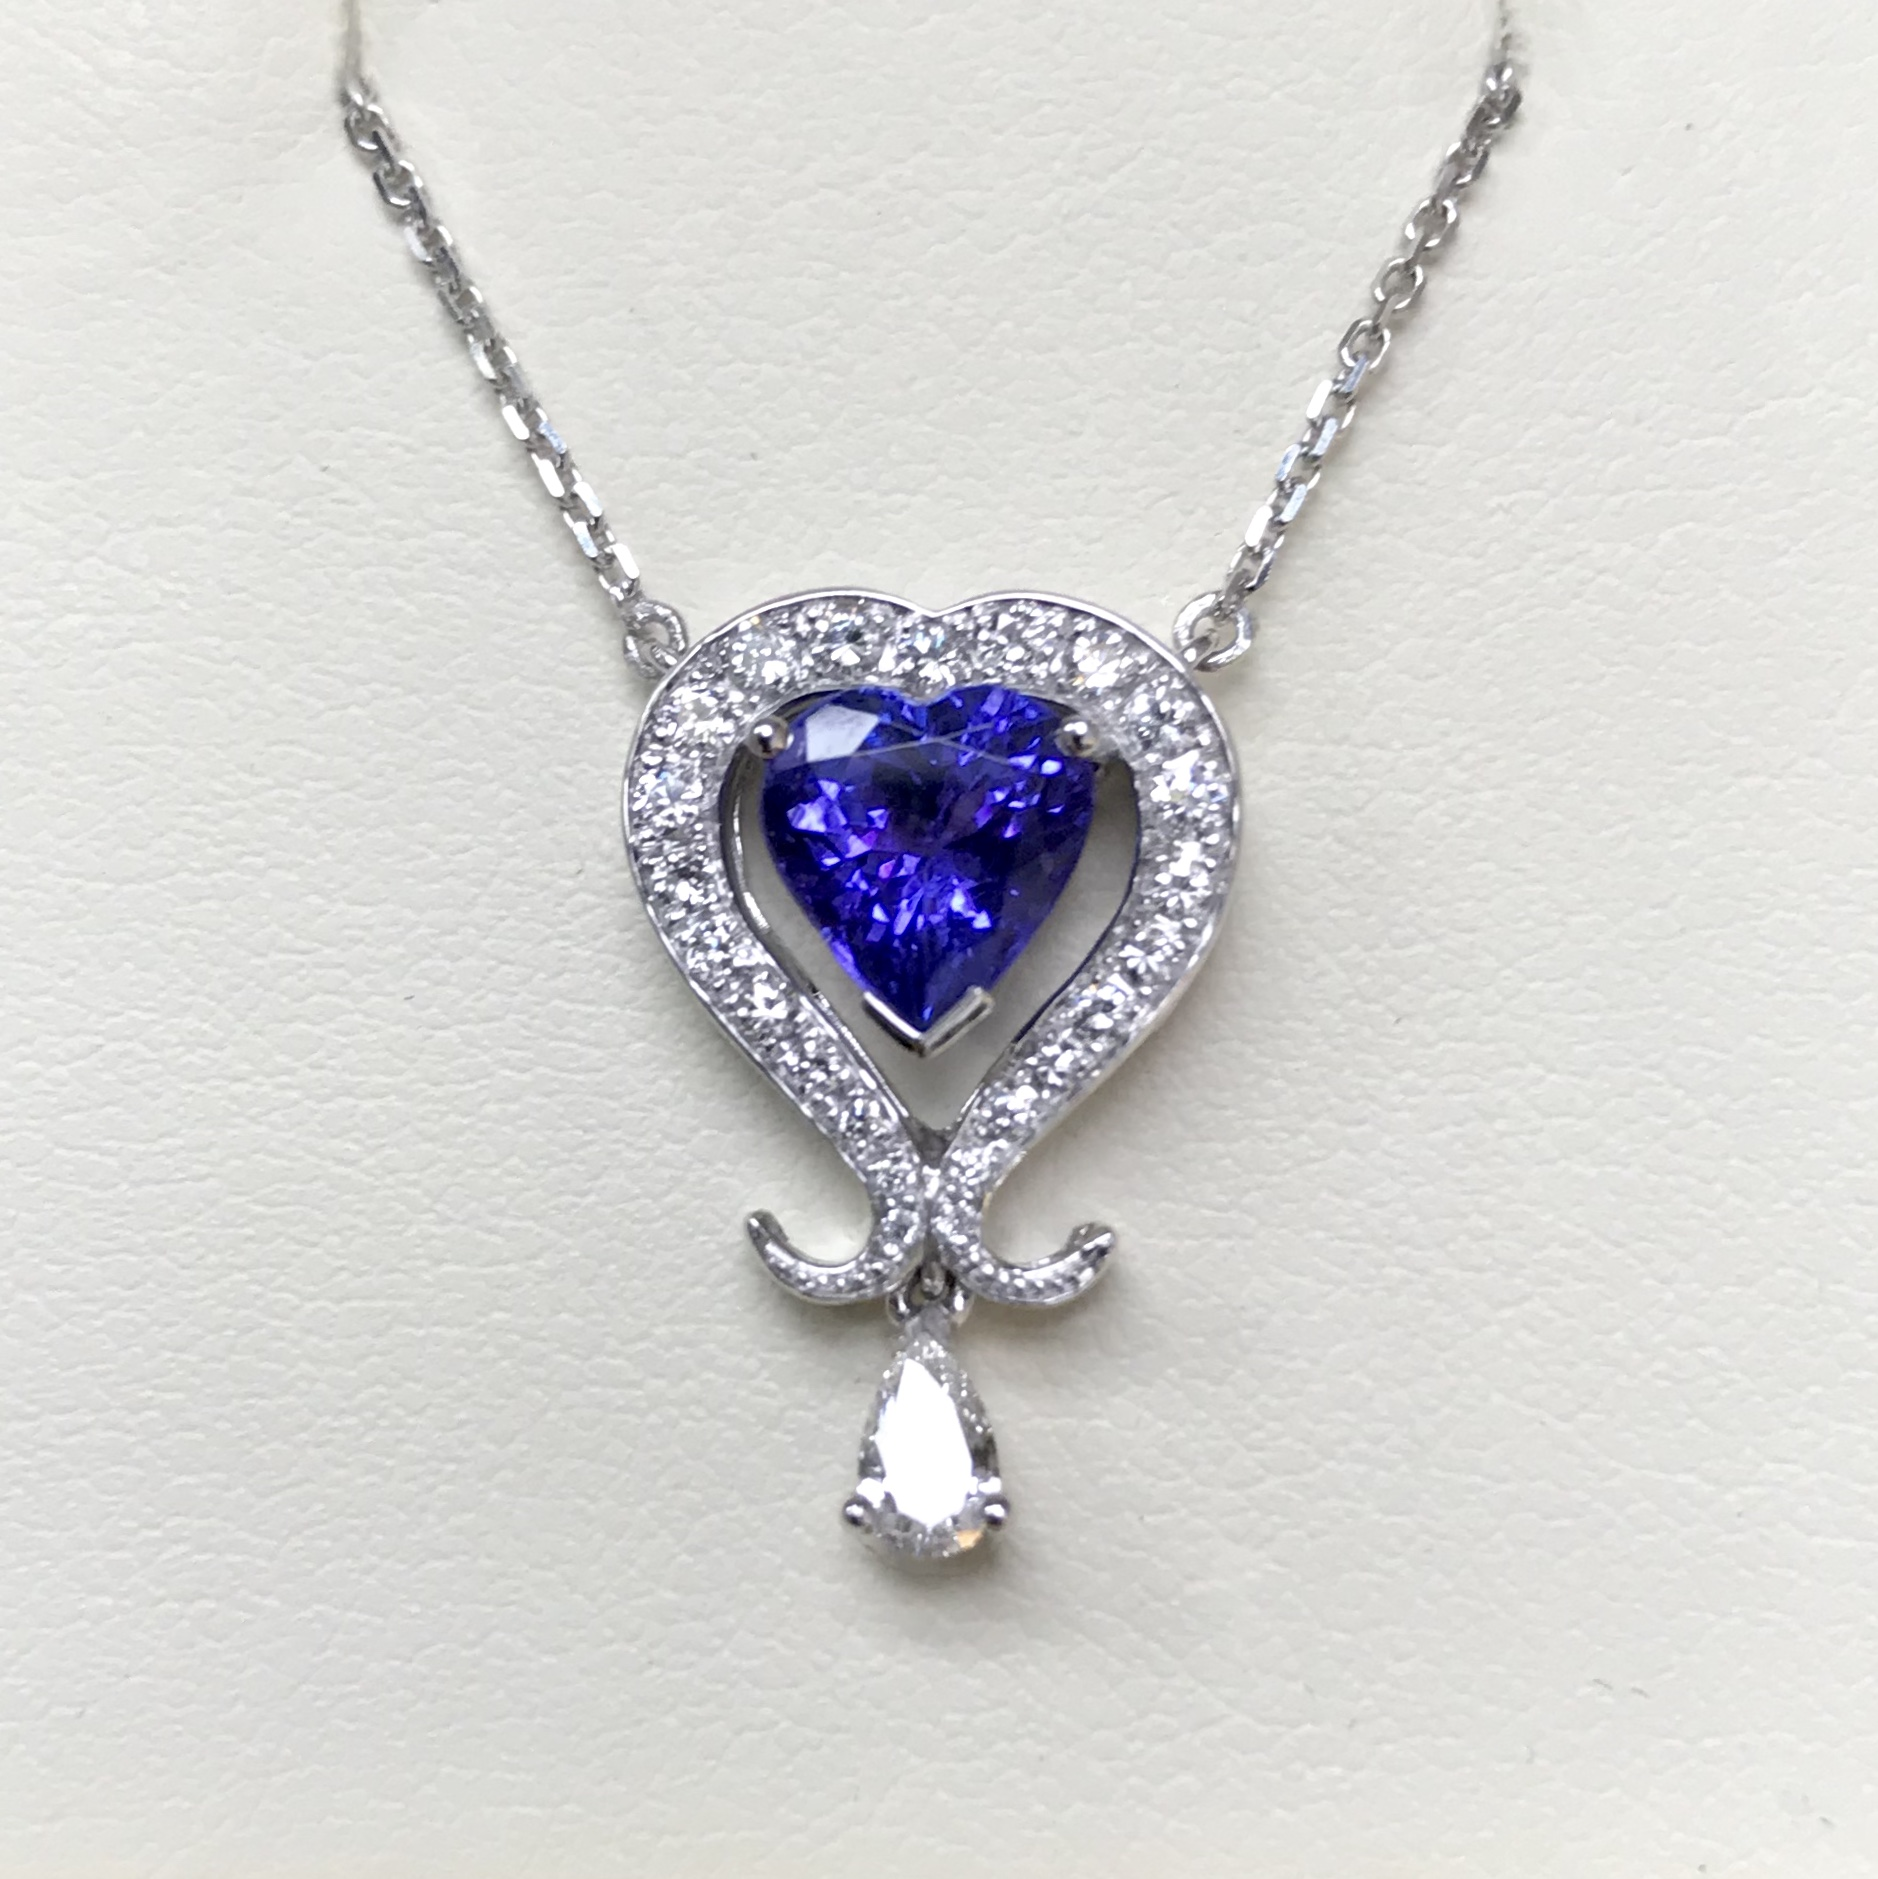 Made to order - A stunning Heart Cut Tanzanite and Diamond articulated pendant commissioned to celebrate a big birthday.